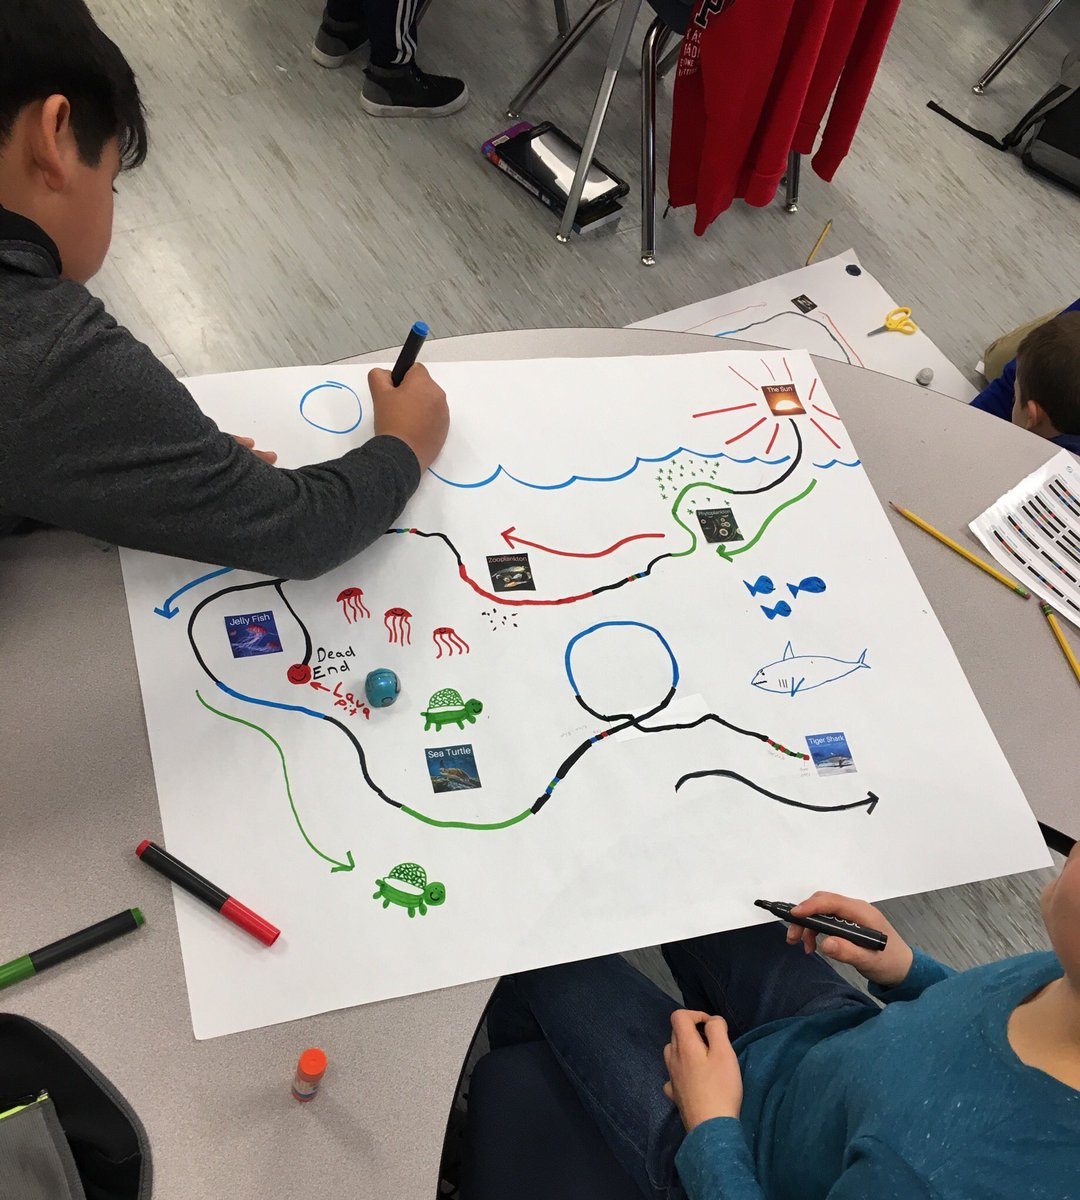 Ozobot Food Chain Challenge: <a target='_blank' href='http://twitter.com/OhmerNation'>@OhmerNation</a> students used <a target='_blank' href='http://twitter.com/Ozobot'>@Ozobot</a> to show us what they know about food chains, energy flow, &amp; coding <a target='_blank' href='http://search.twitter.com/search?q=APScodes'><a target='_blank' href='https://twitter.com/hashtag/APScodes?src=hash'>#APScodes</a></a> <a target='_blank' href='http://twitter.com/AbingdonGIFT'>@AbingdonGIFT</a> <a target='_blank' href='https://t.co/85eovNs7f5'>https://t.co/85eovNs7f5</a>